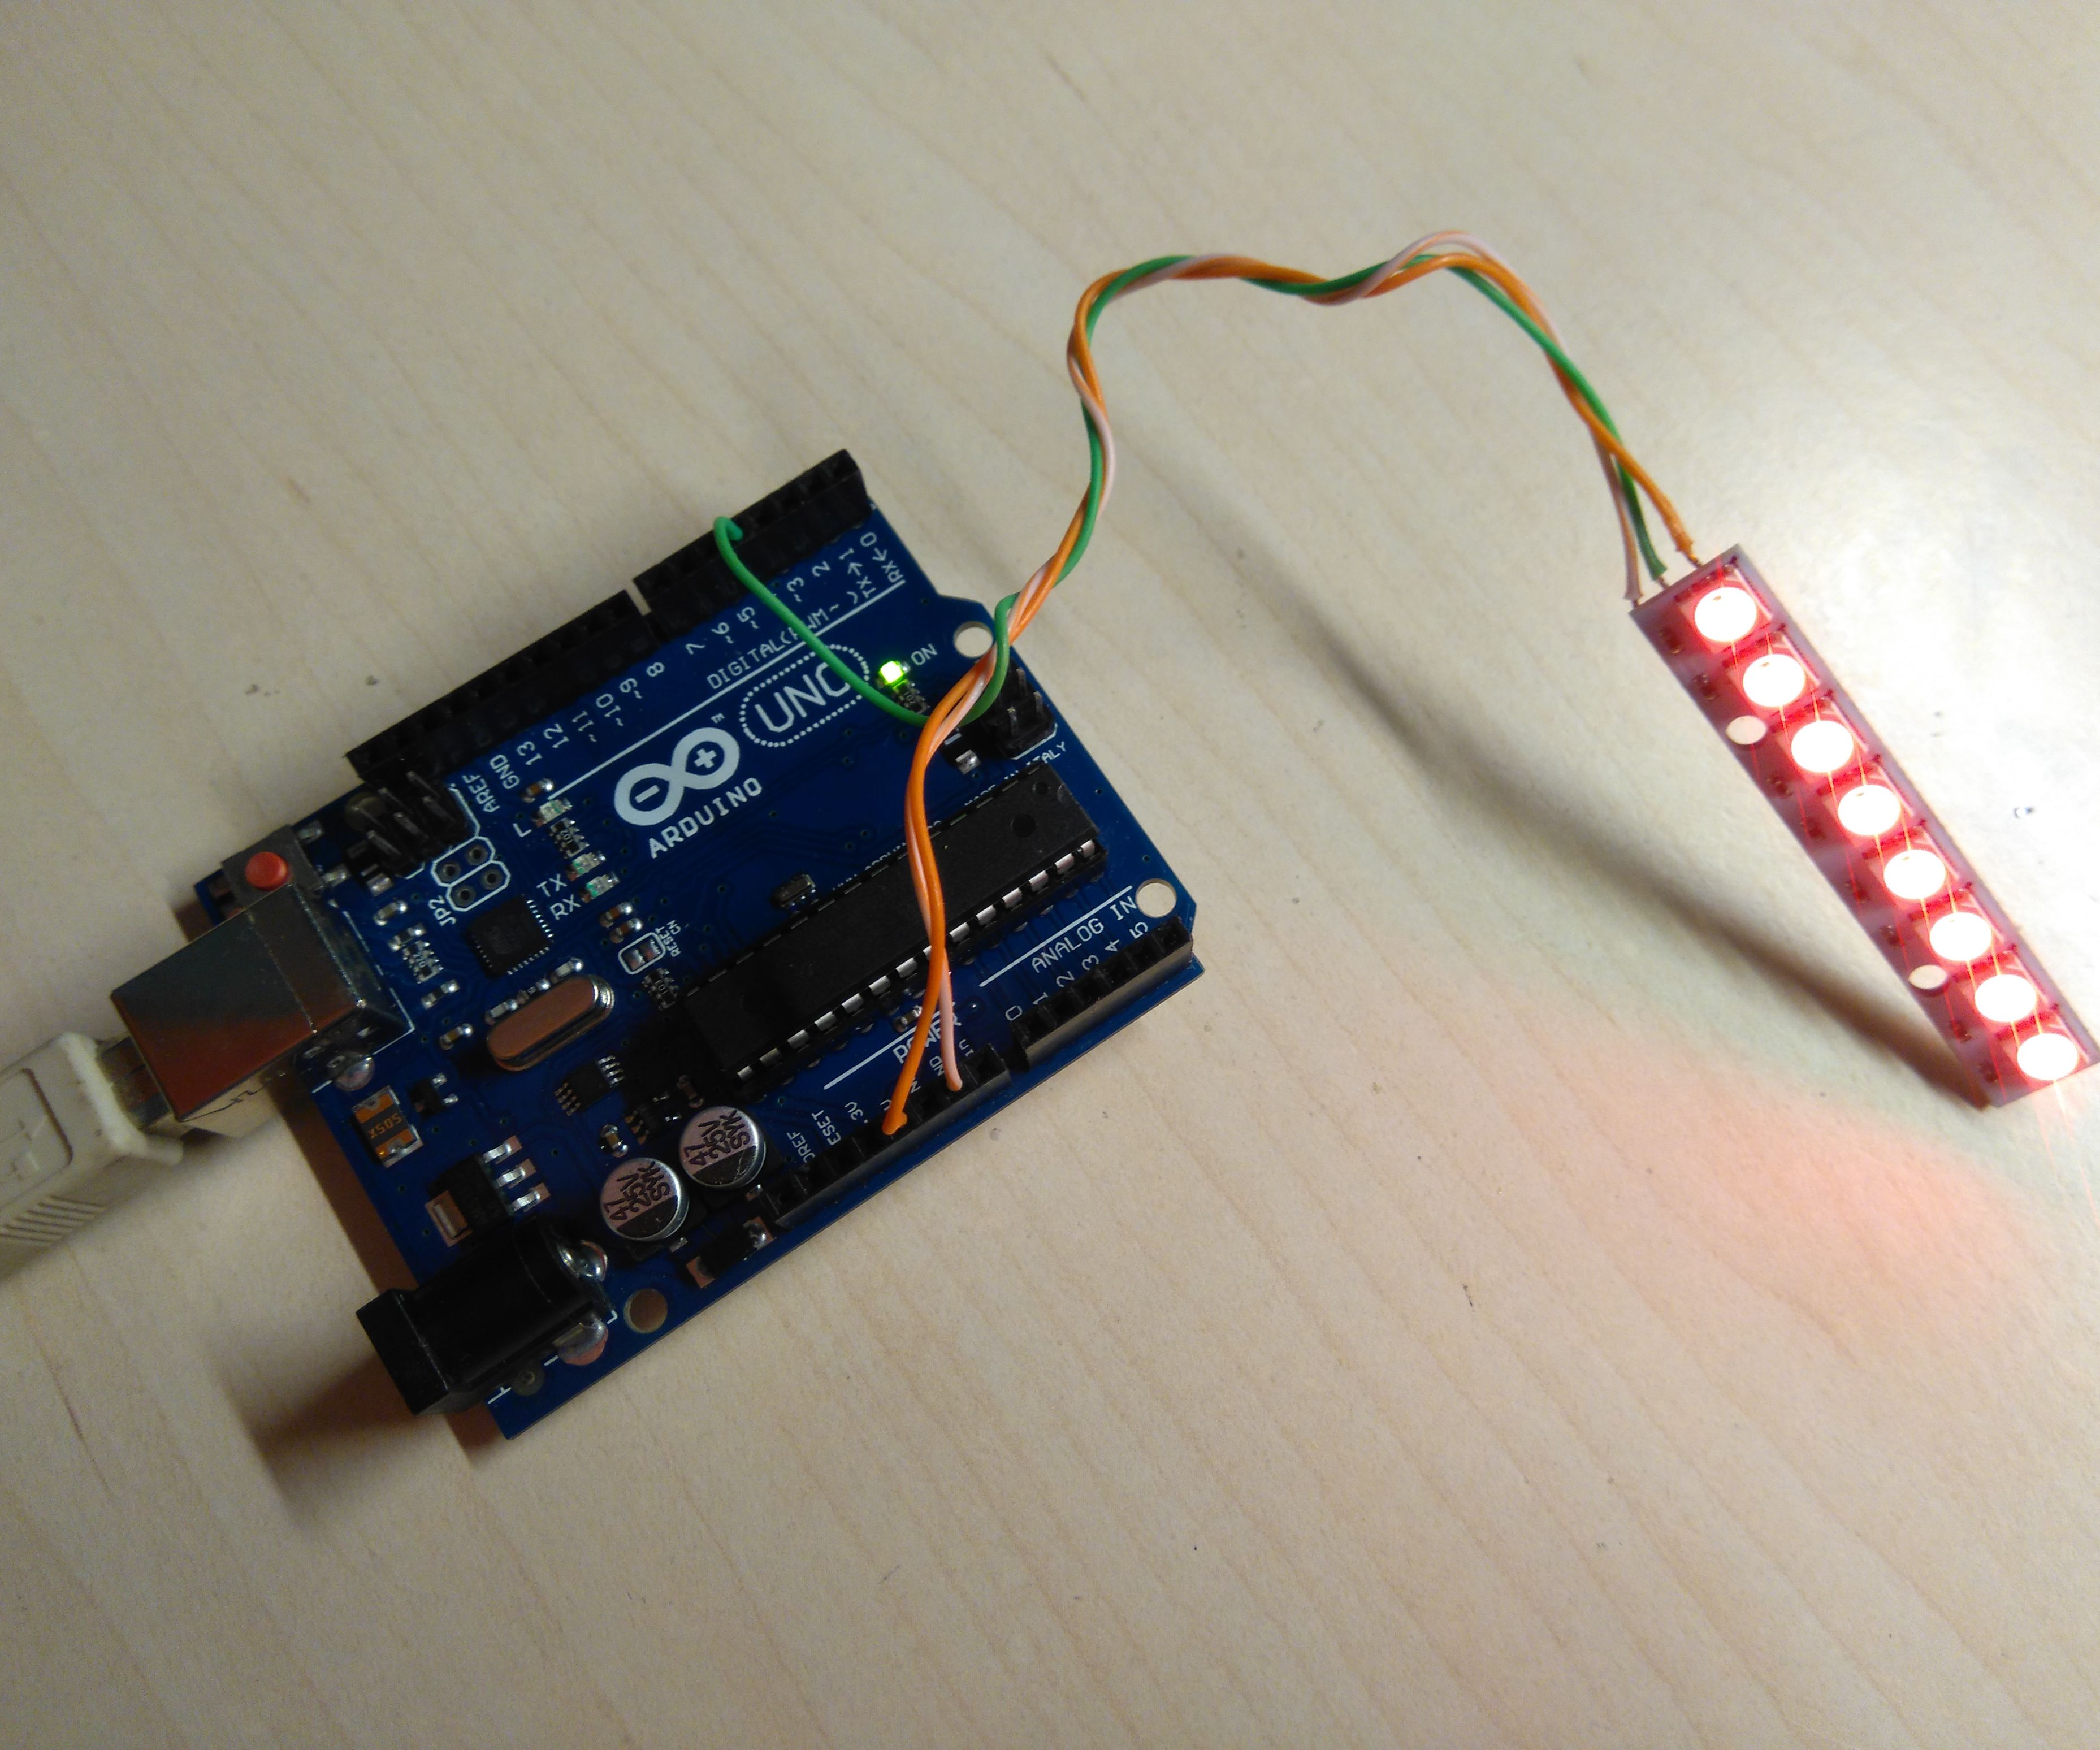 How to Control an RGB LED Strip - Arduino Tutorial: 4 Steps (with